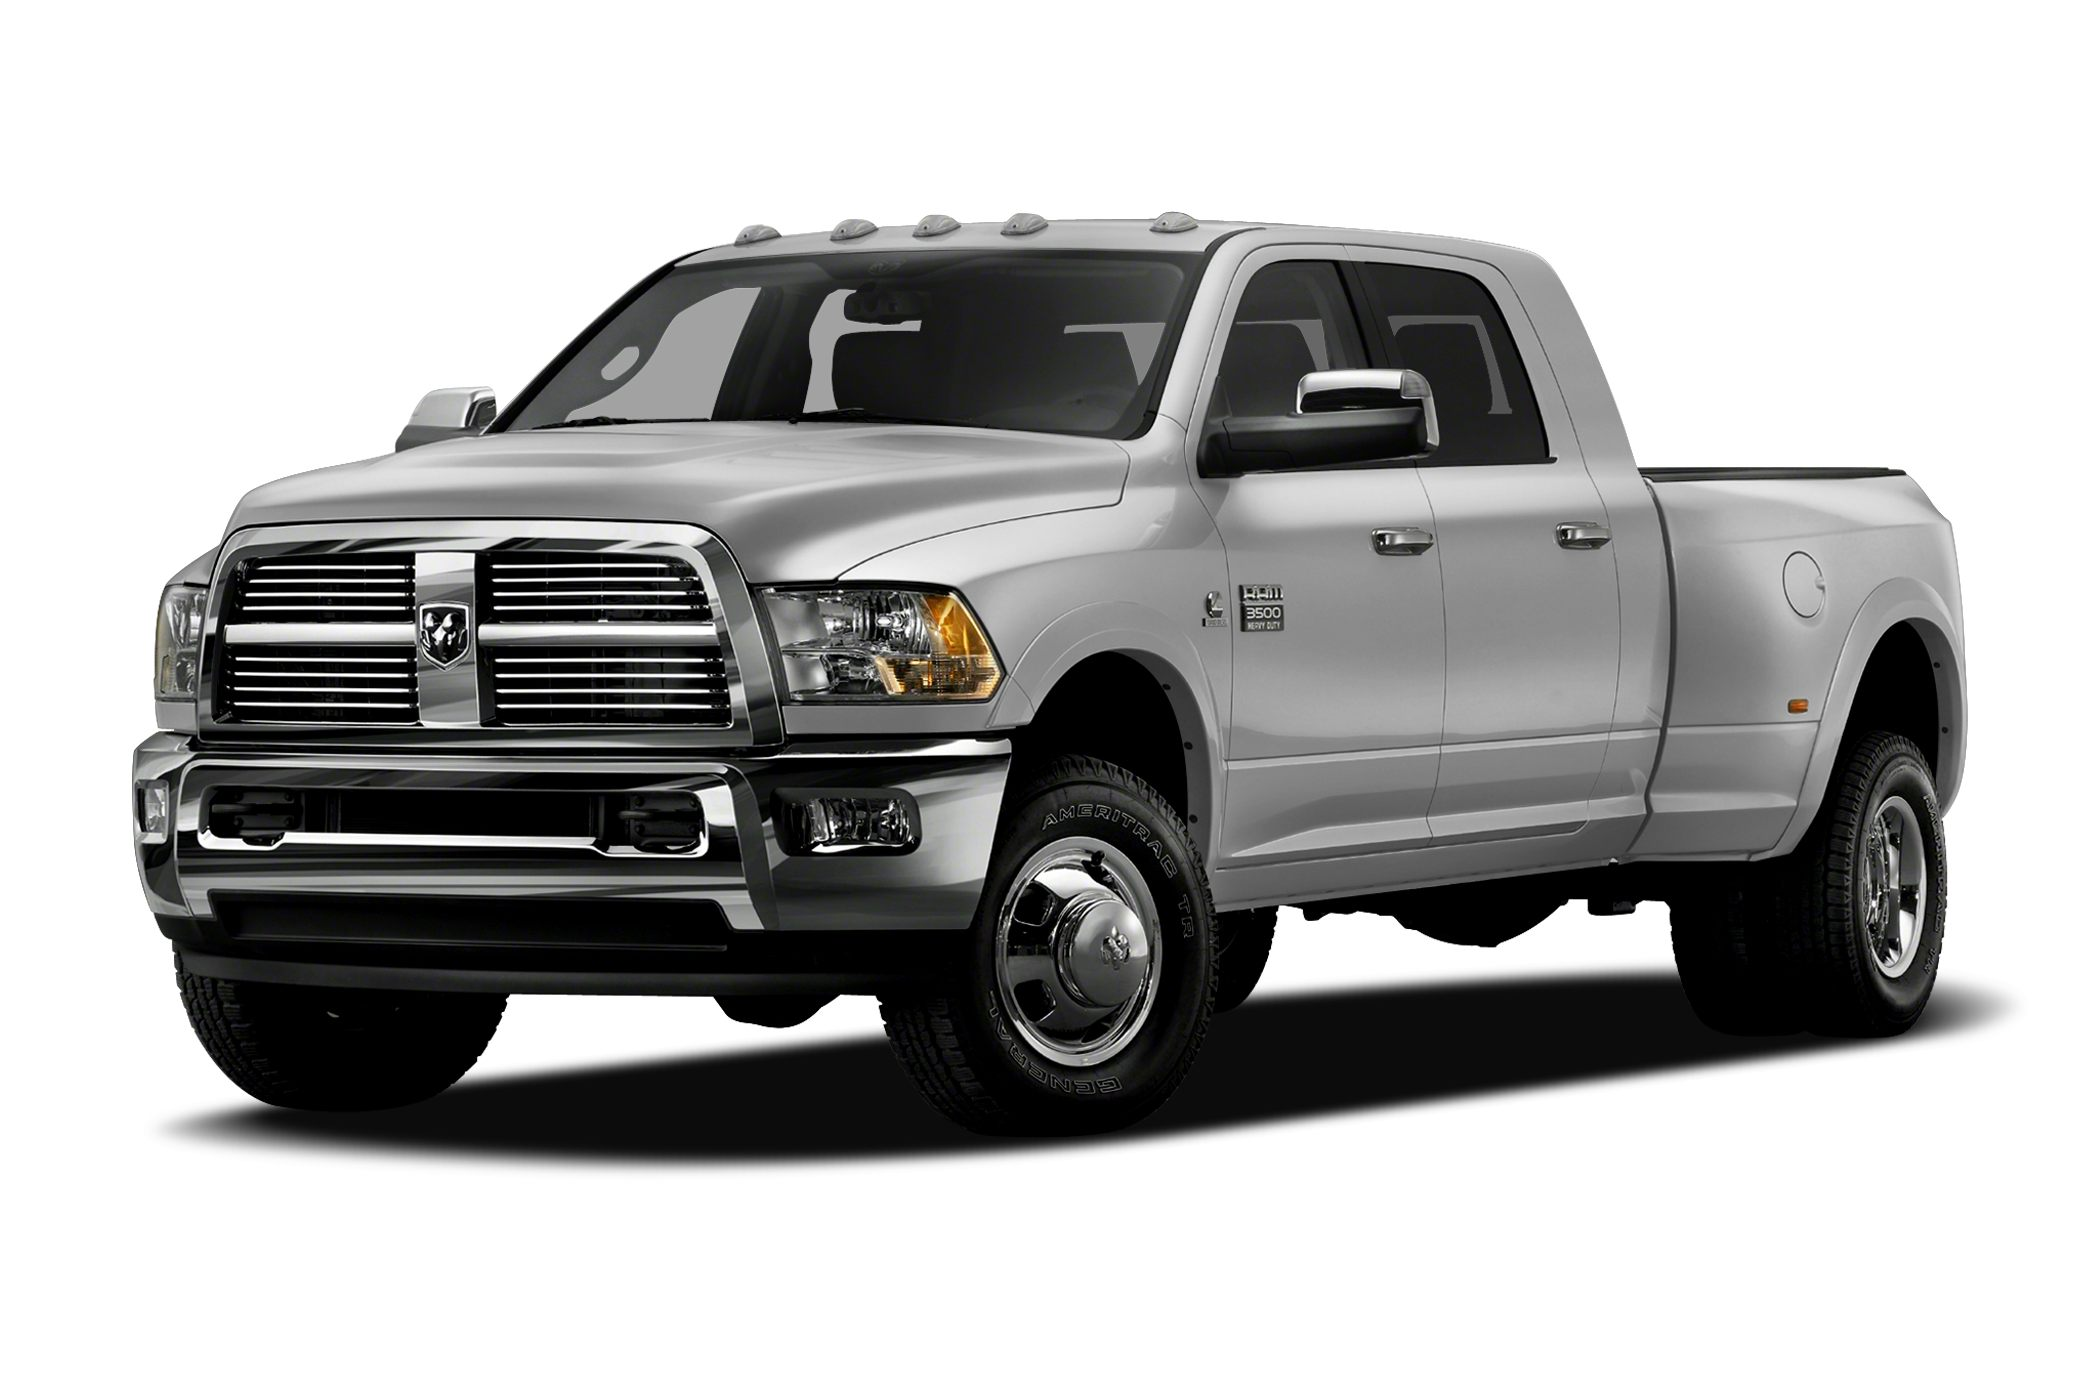 2012 Ram 3500 Laramie Longhorn Limited Edition 4x4 Mega Cab 160 5 In Wb Specs And Prices